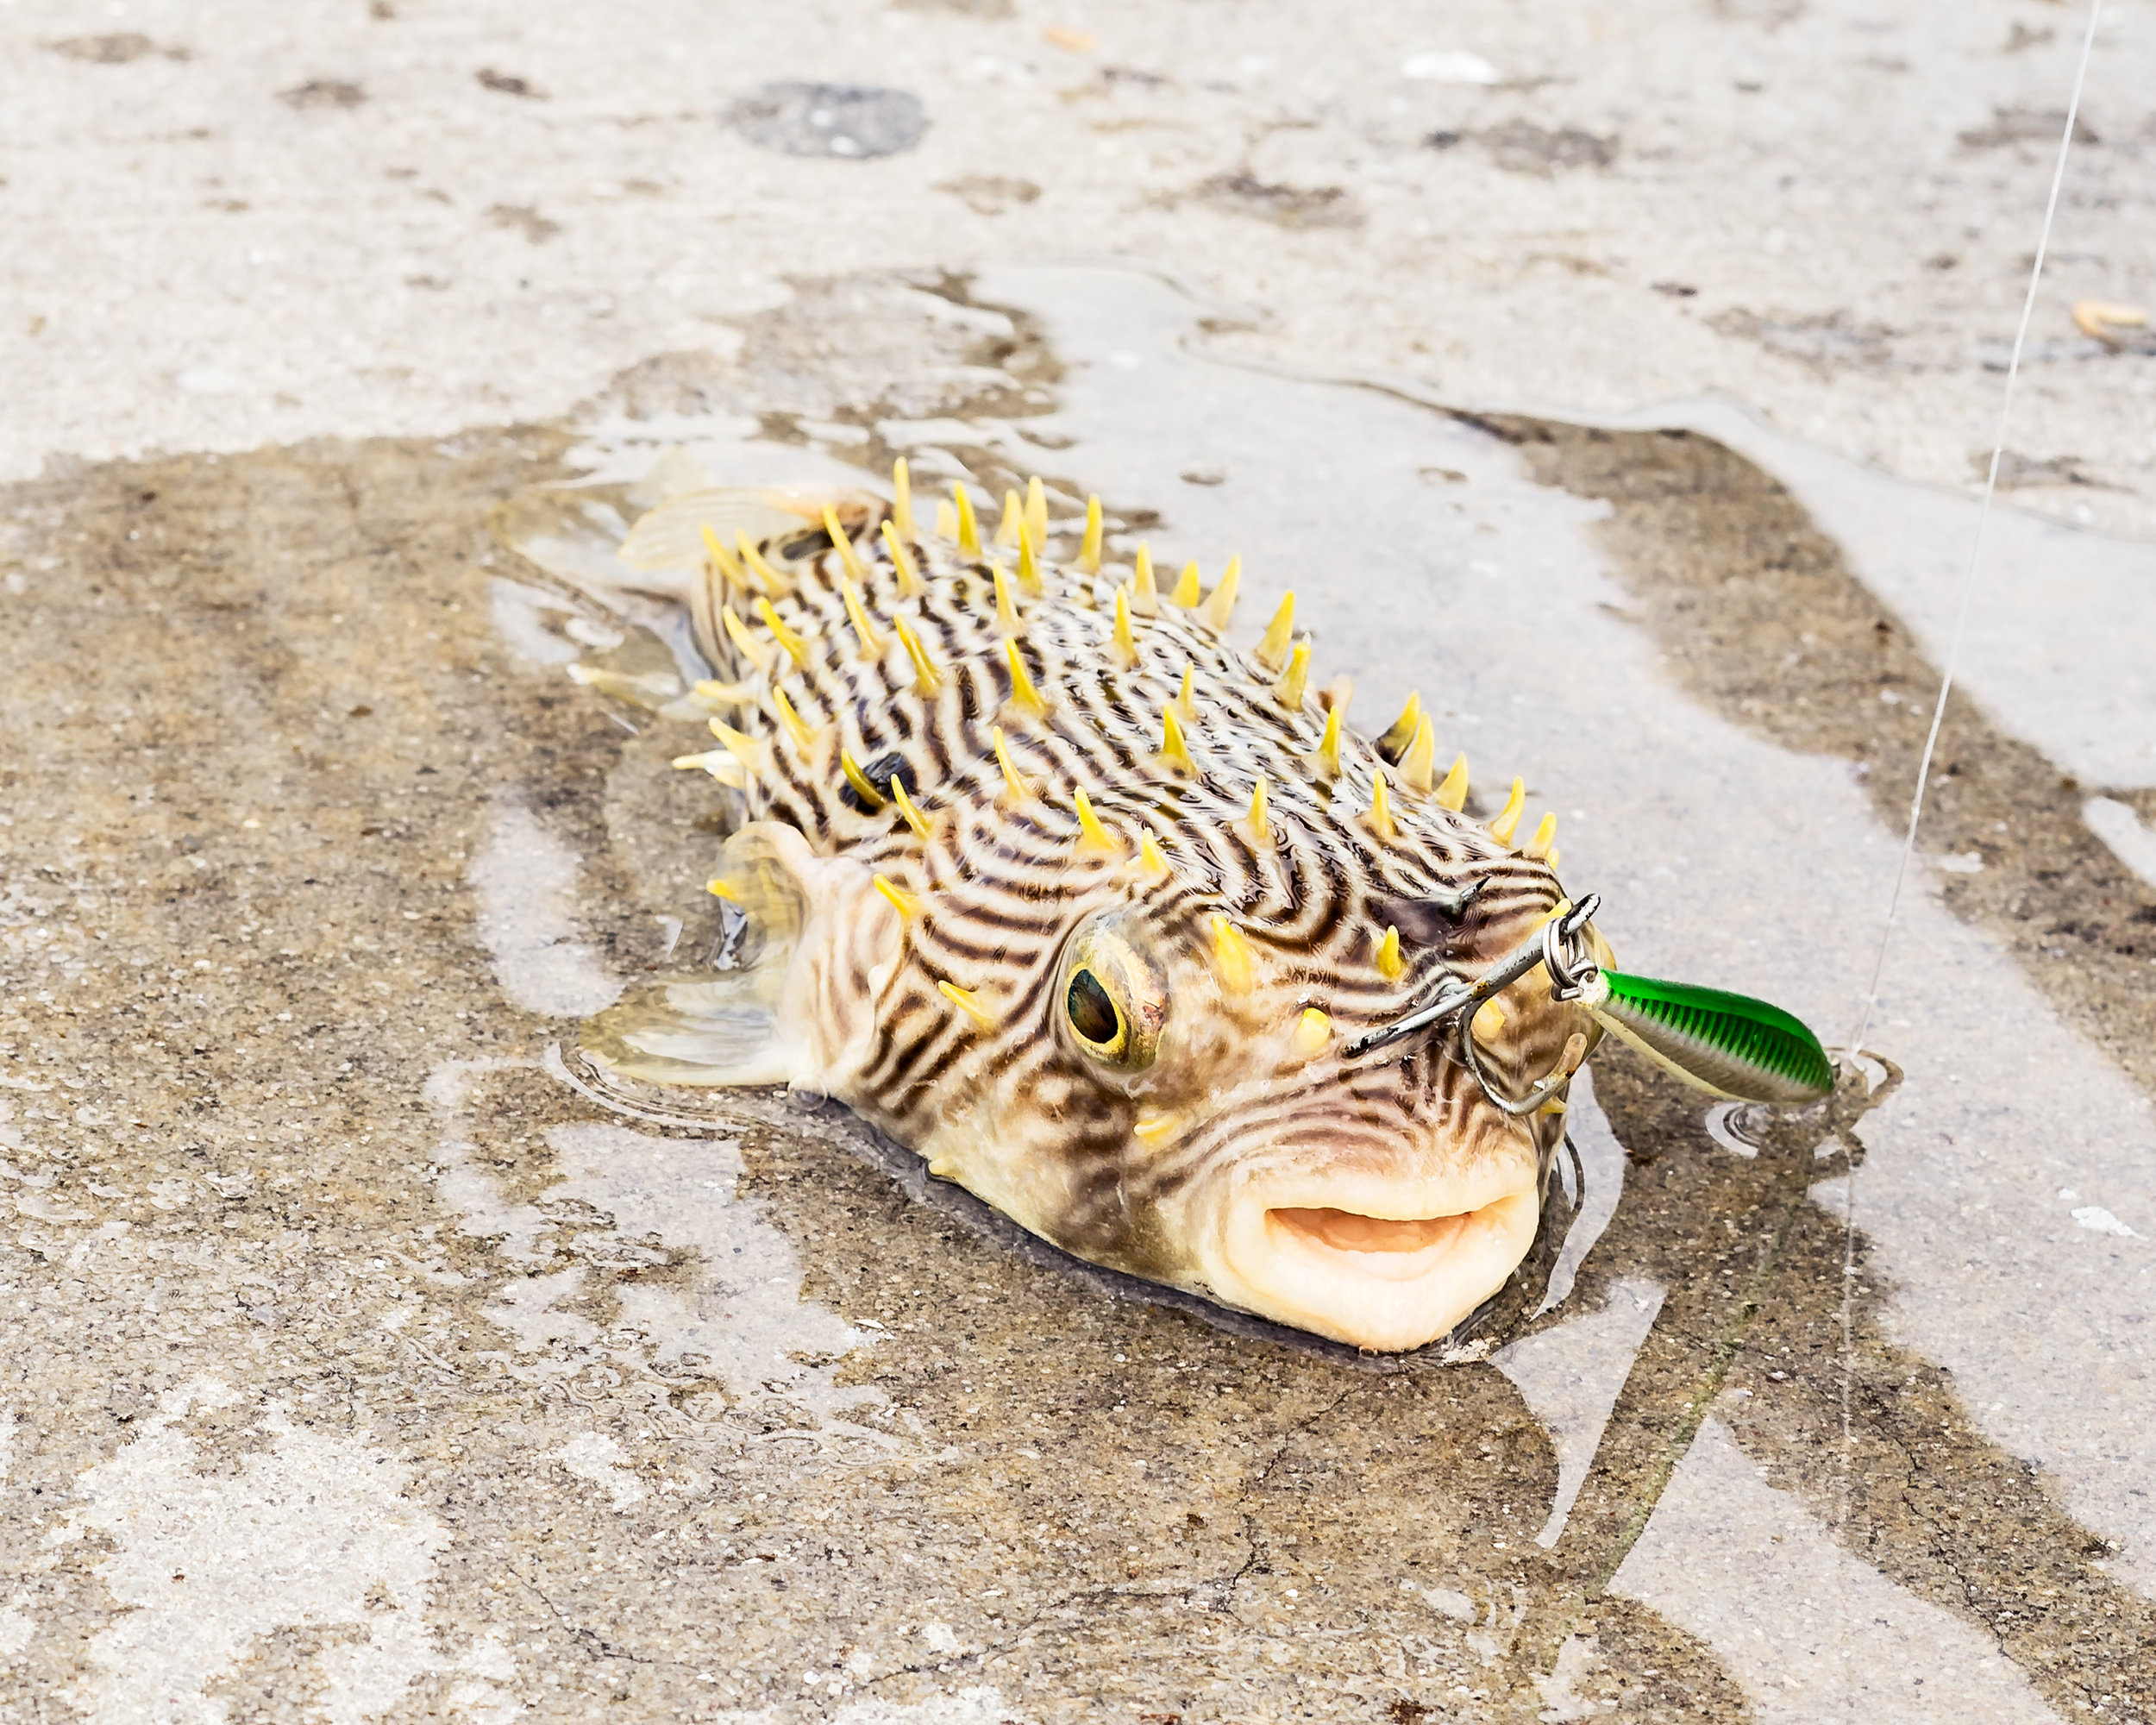 An unexpected catch. This spiny box puffer, or striped burrfish, wound up running in to a fisherman's hook and getting reeled in. The sharp barbs and it's beak can prove to be a challenge when removing the hook. These fish are poor swimmers and not good to eat.